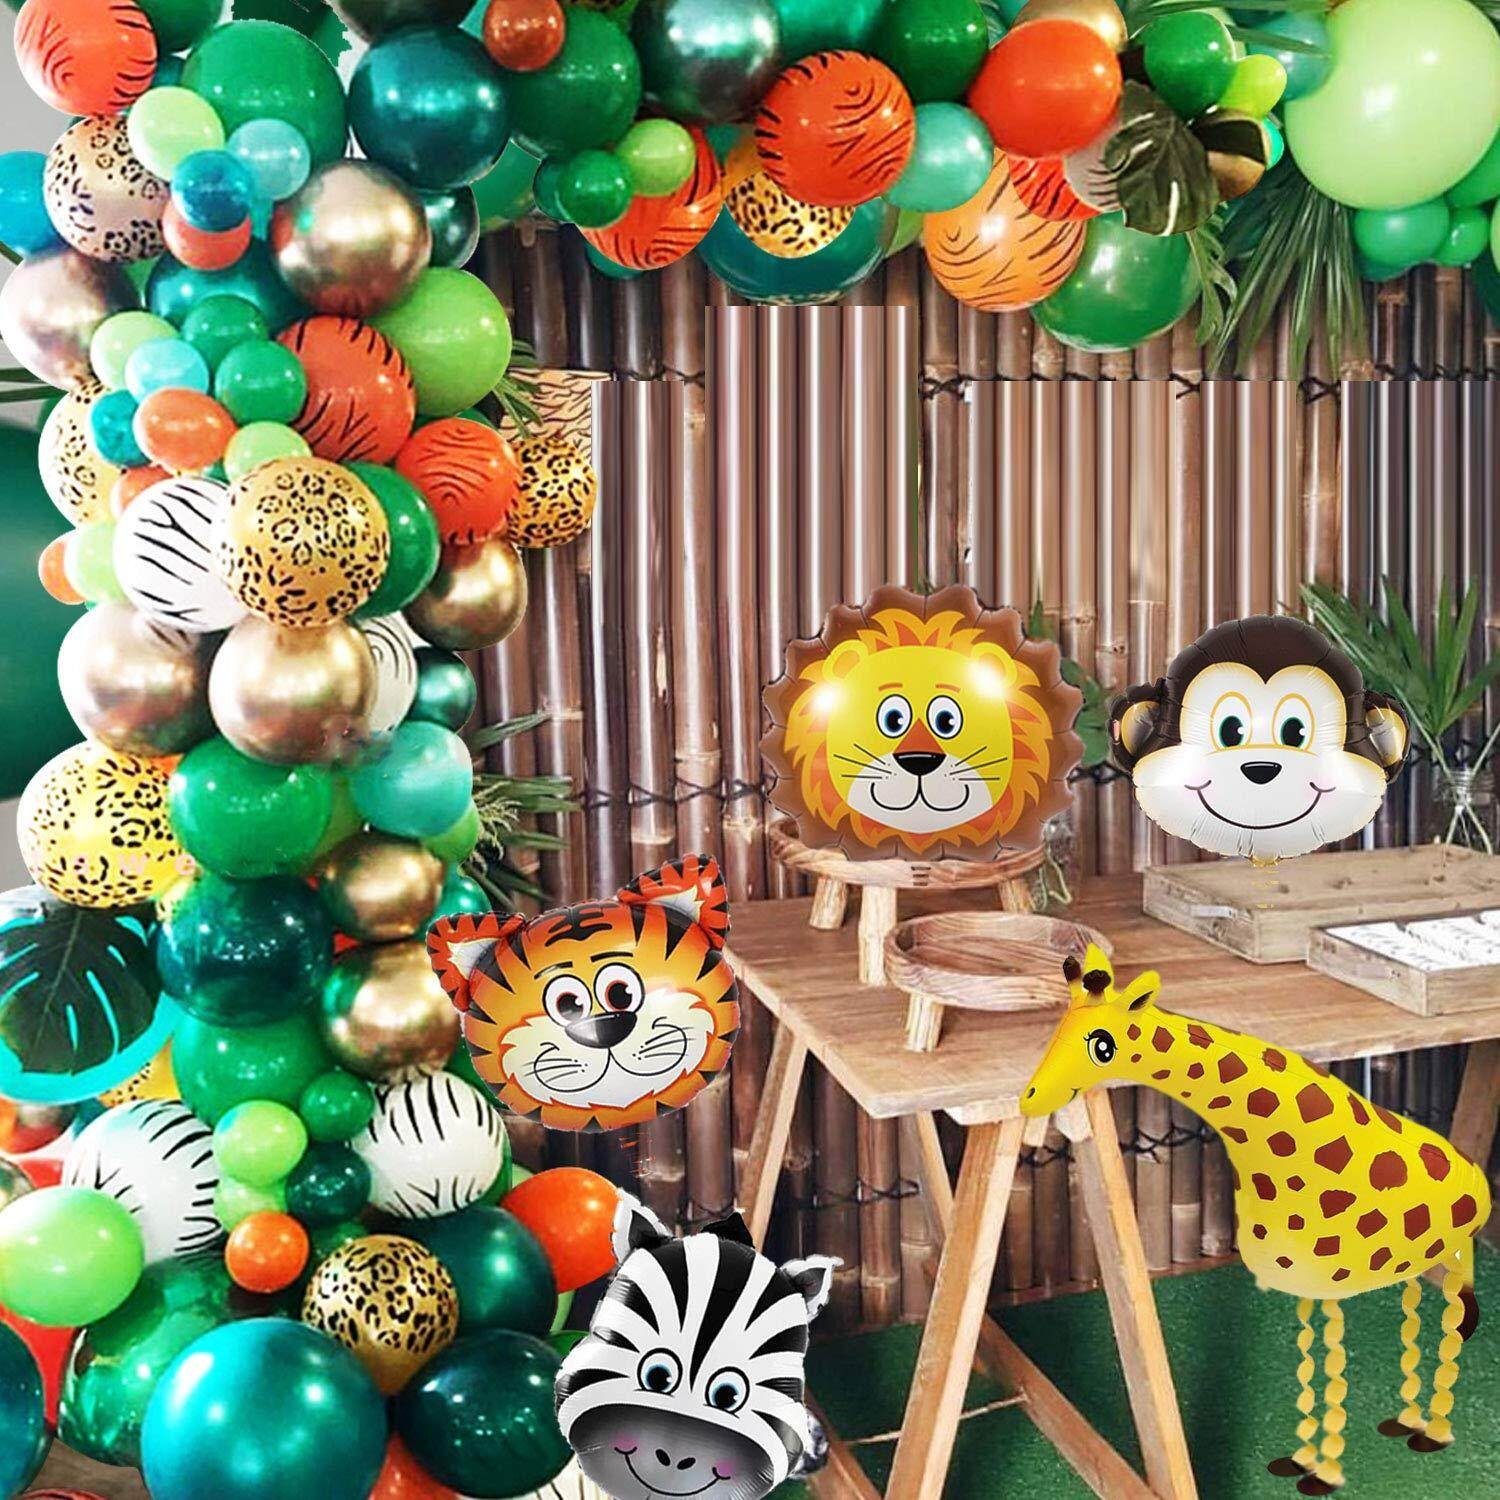 Jungle Safari Theme Party Balloon 151 Pack With Animal Balloons And Palm Leaves For Kids Birthday Party Baby Shower Decorations